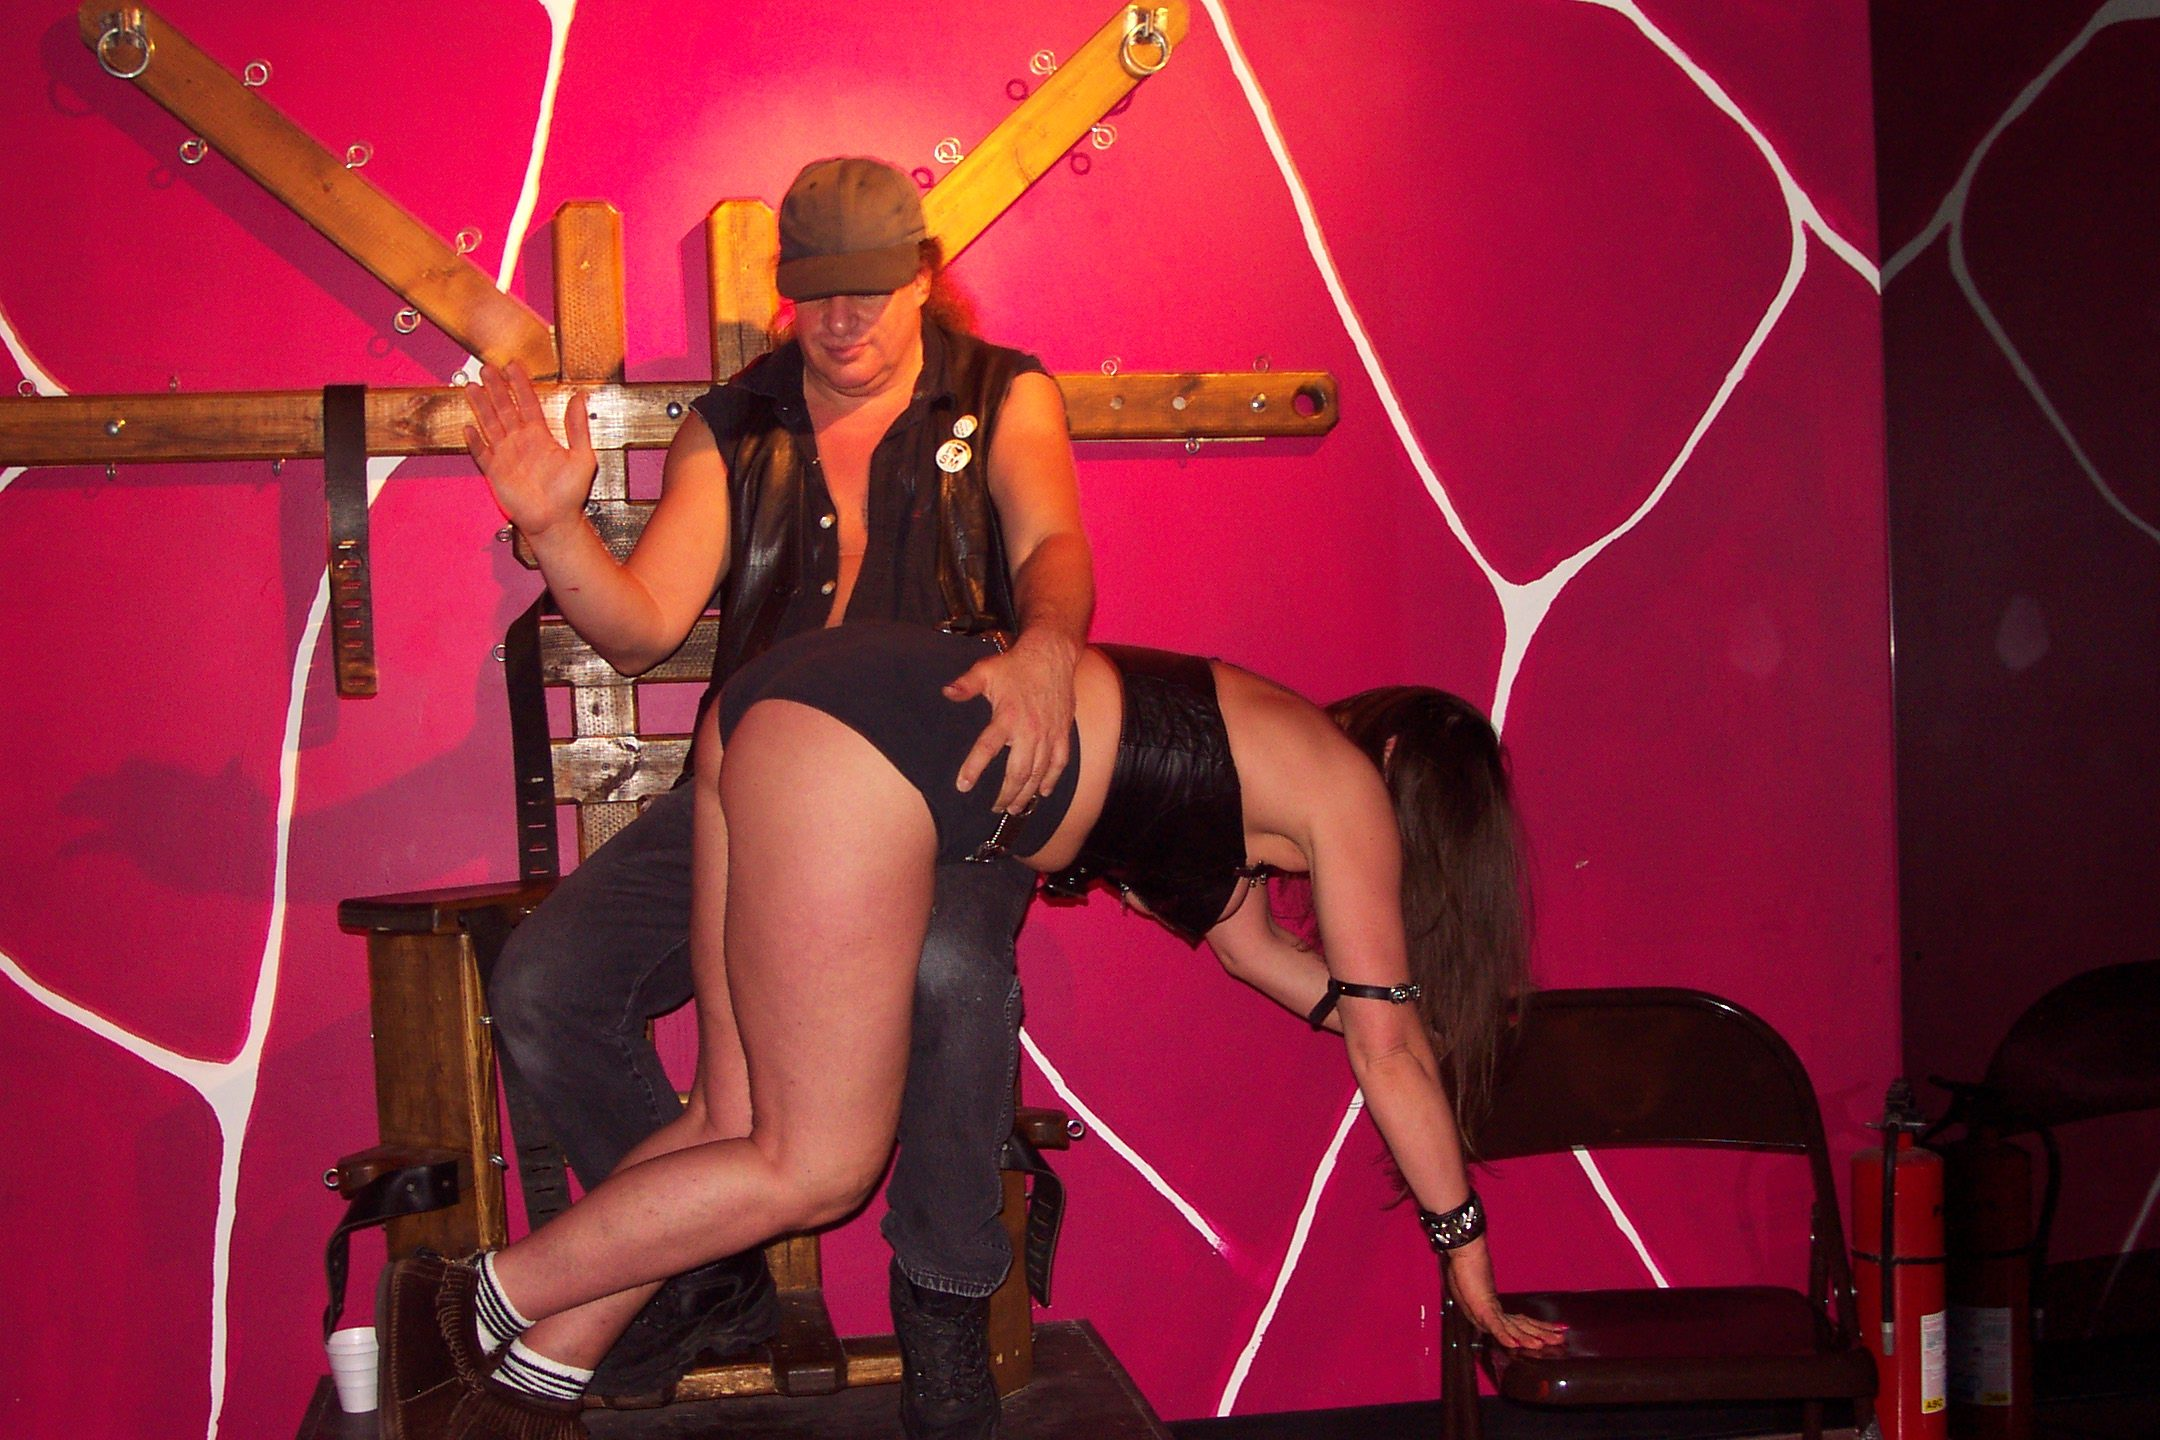 Princess recommend best of Bdsm club nyc